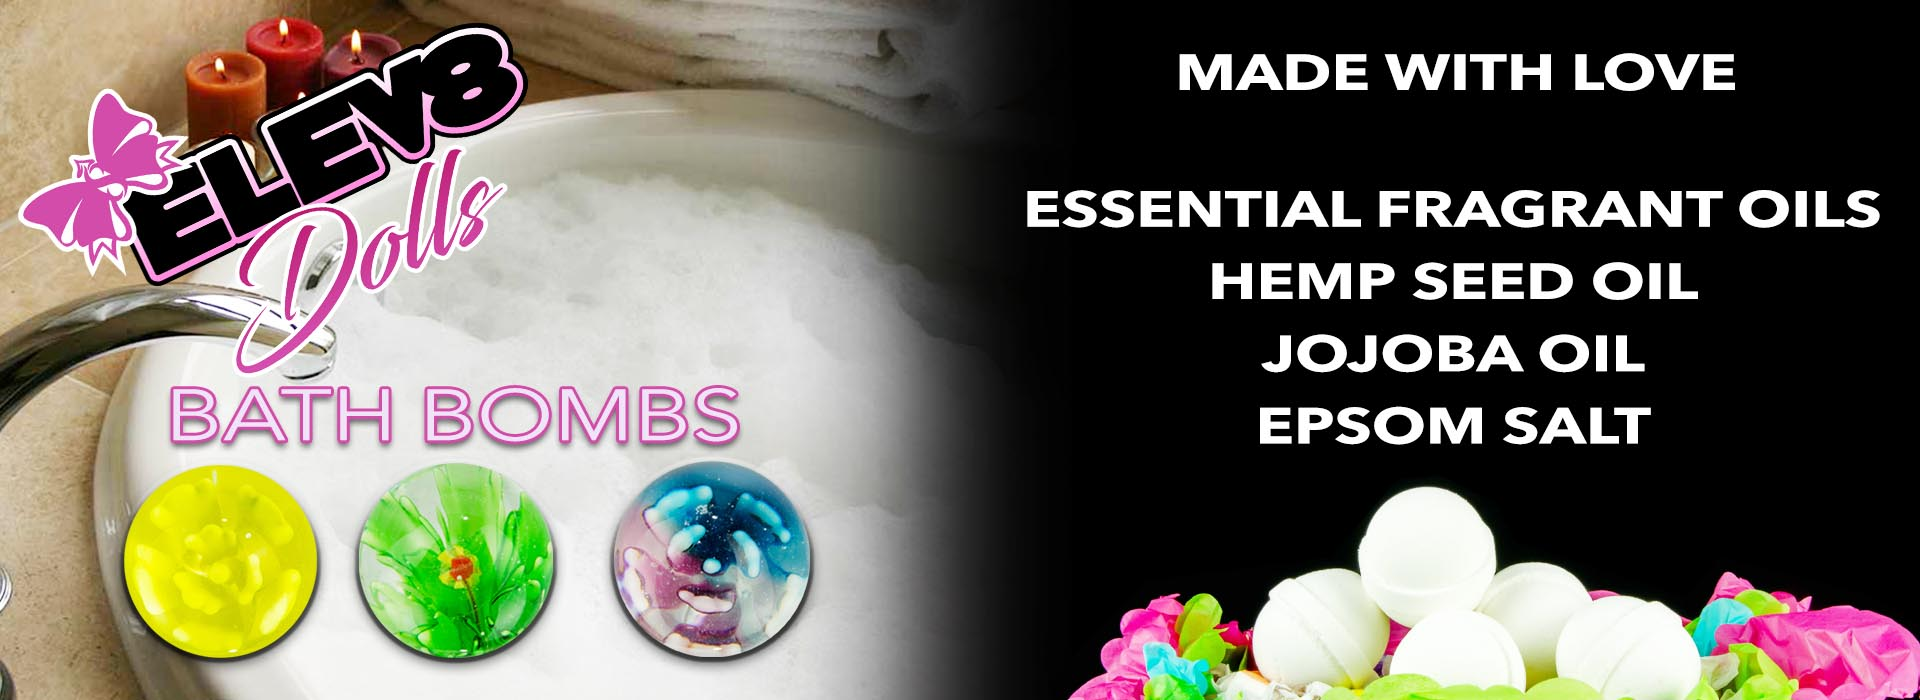 bath-bombs-banner-2.jpg